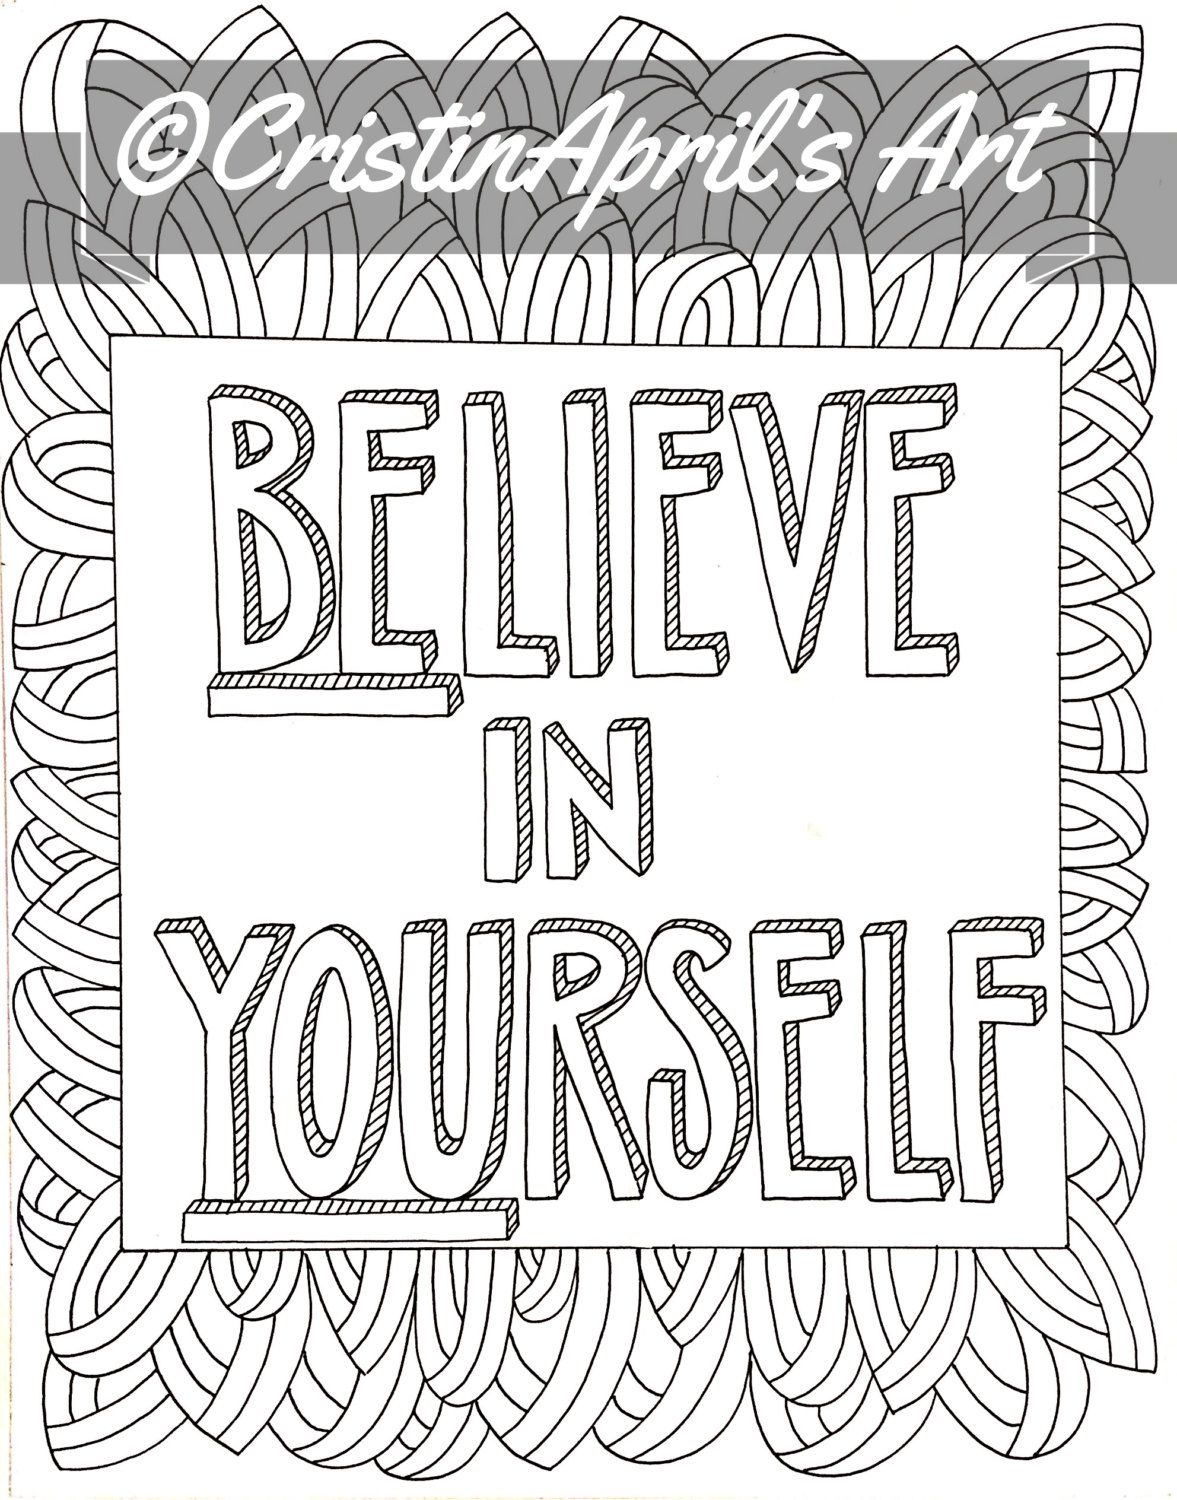 Printable Adult Coloring Book Page Believe In Yourself Instant Download DIY Wall ArtHand Drawn Digital Inspirational Colouring